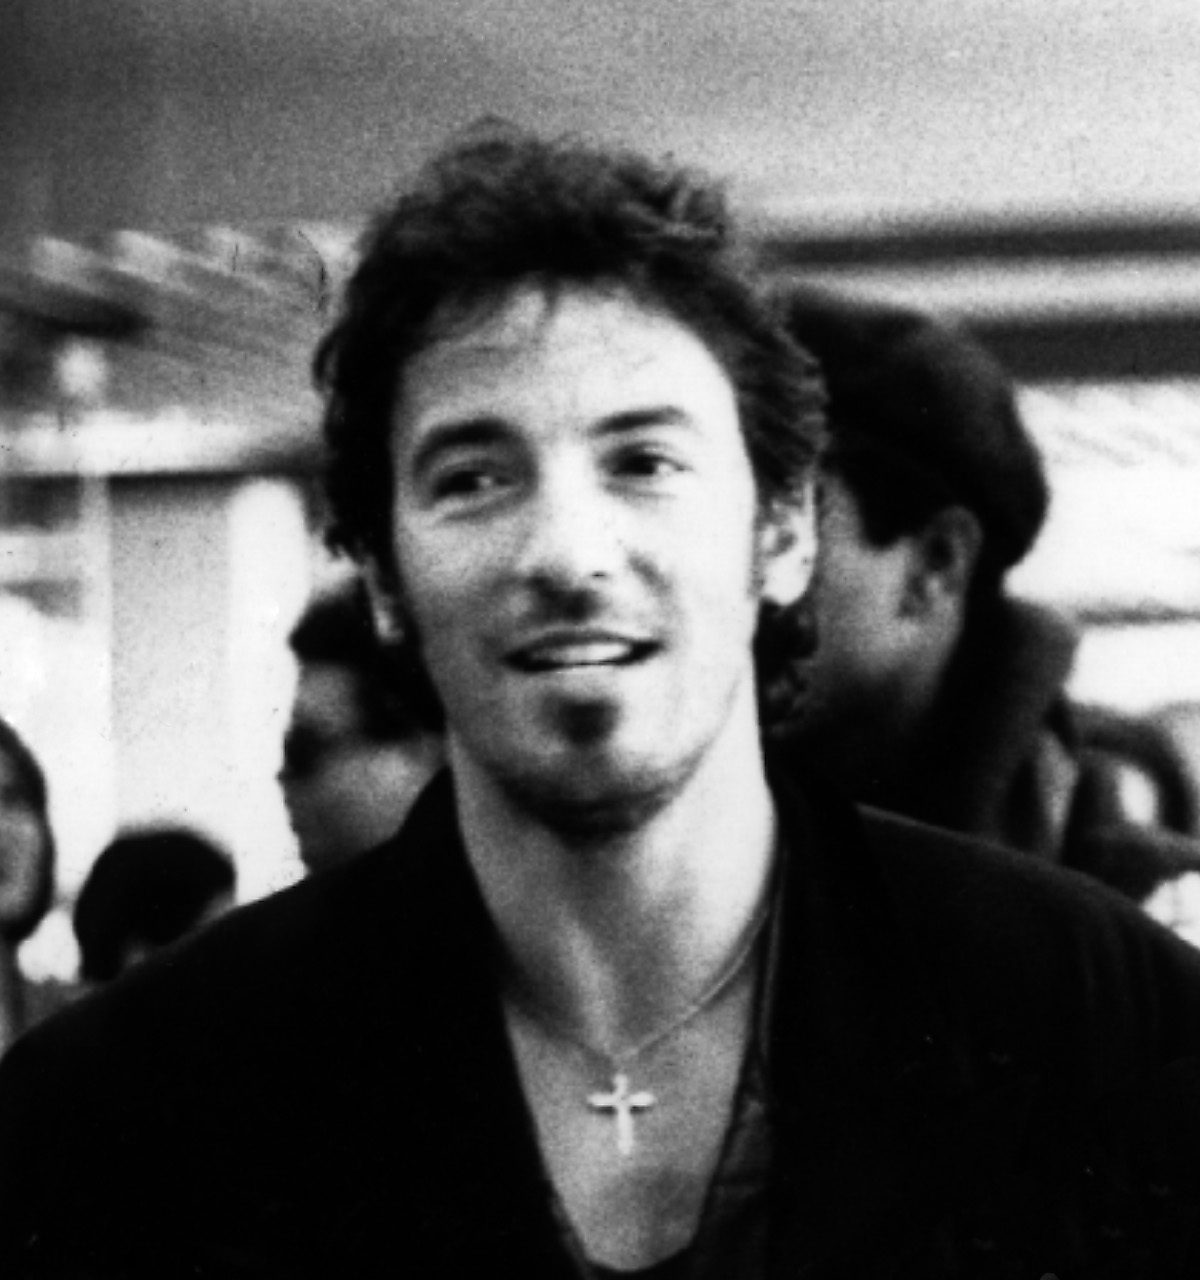 Bruce Springsteen - Images Gallery